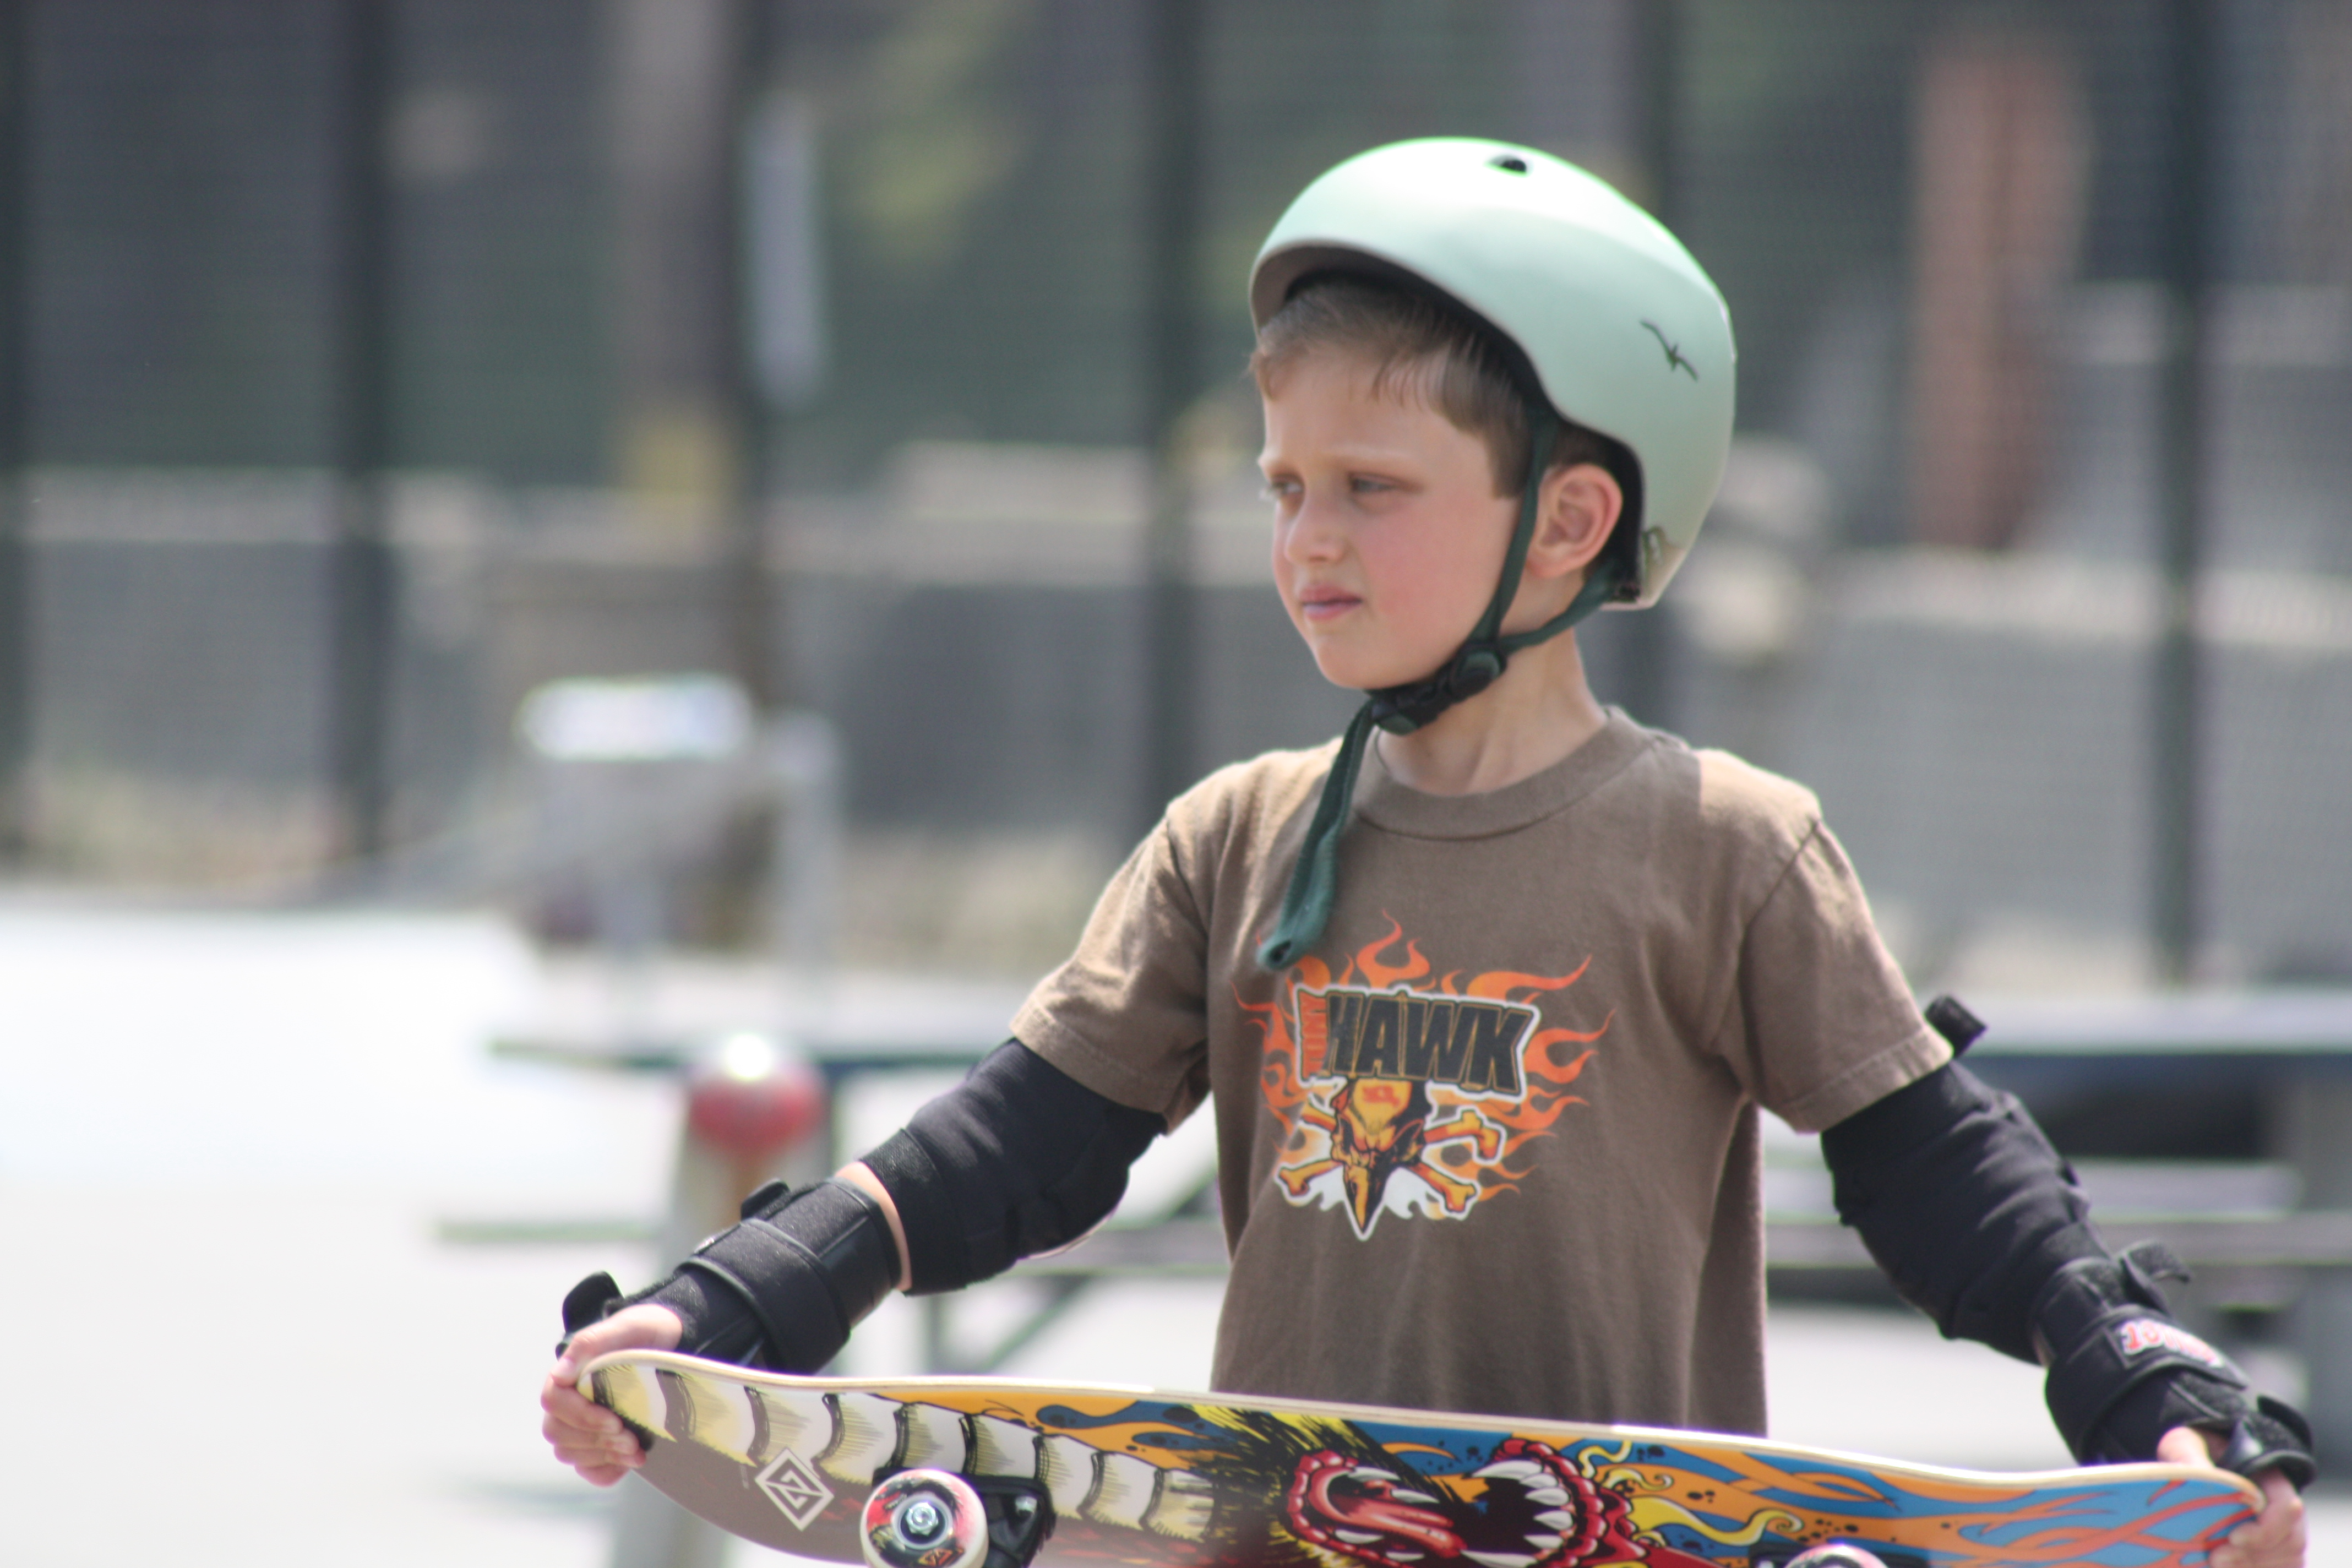 The kid with his Tony Hawk shirt, before he got the crappy game as a present